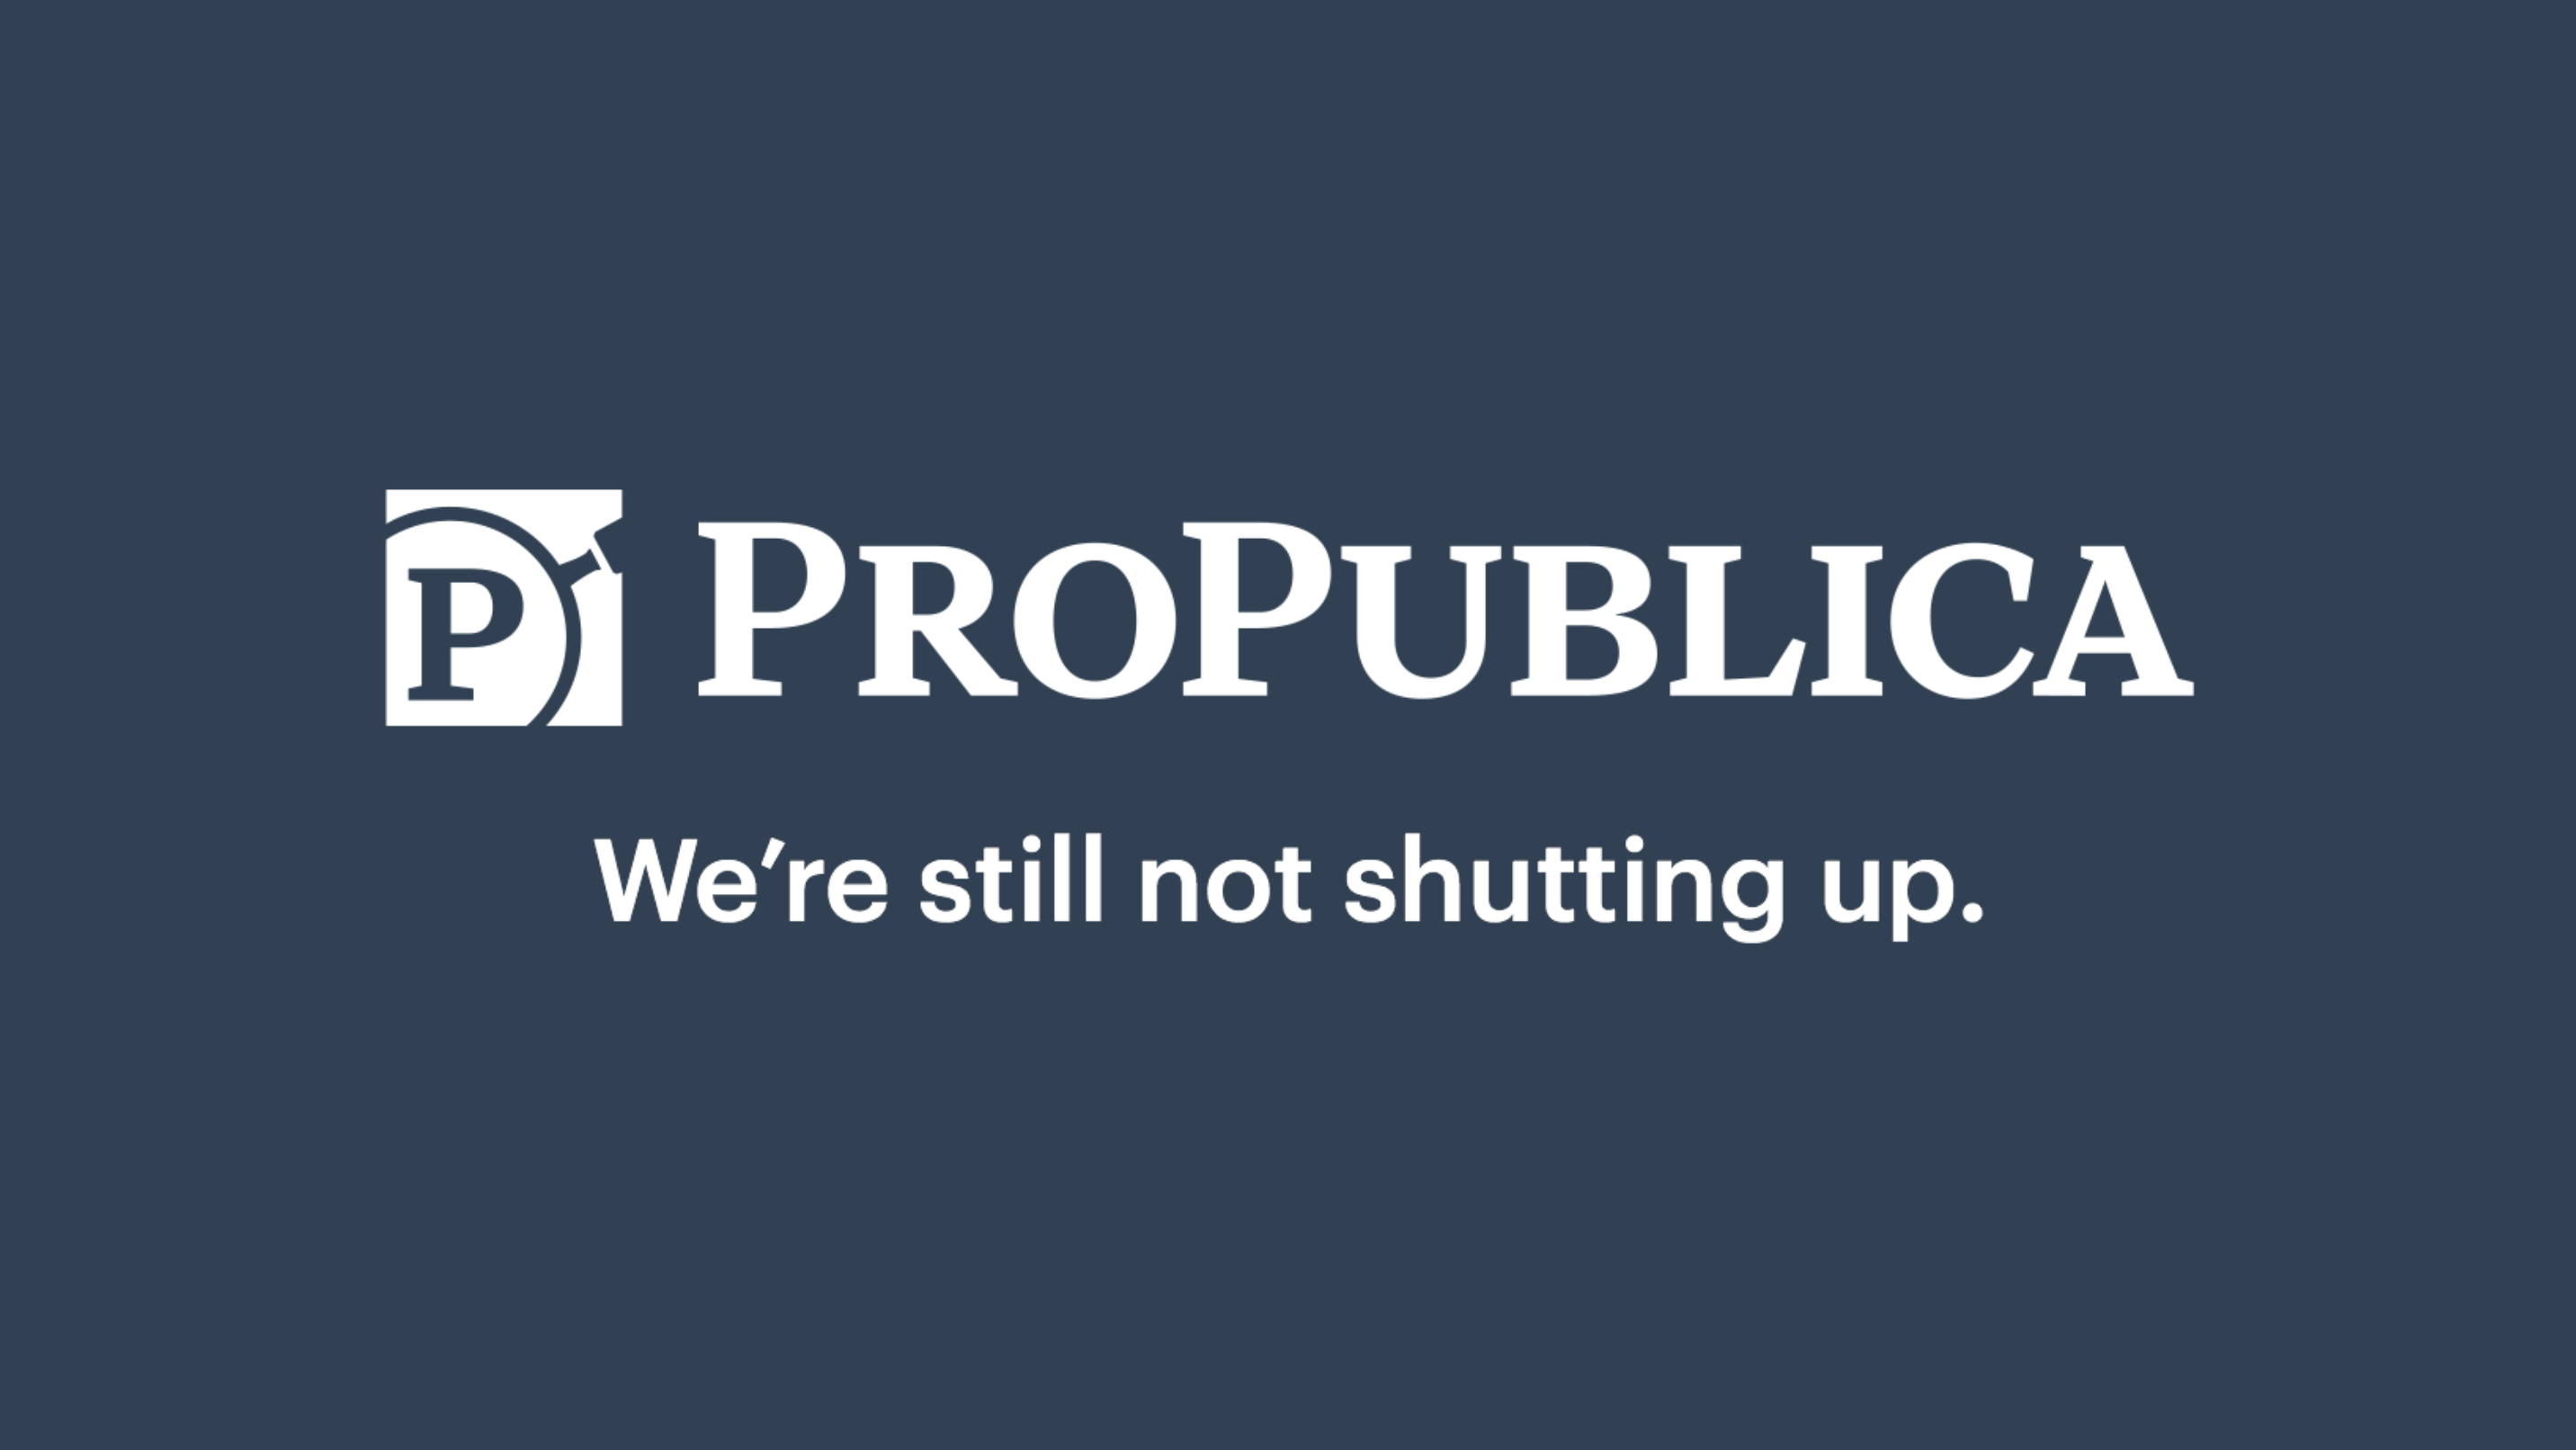 Nominee ProPublica - We're still not shutting up.